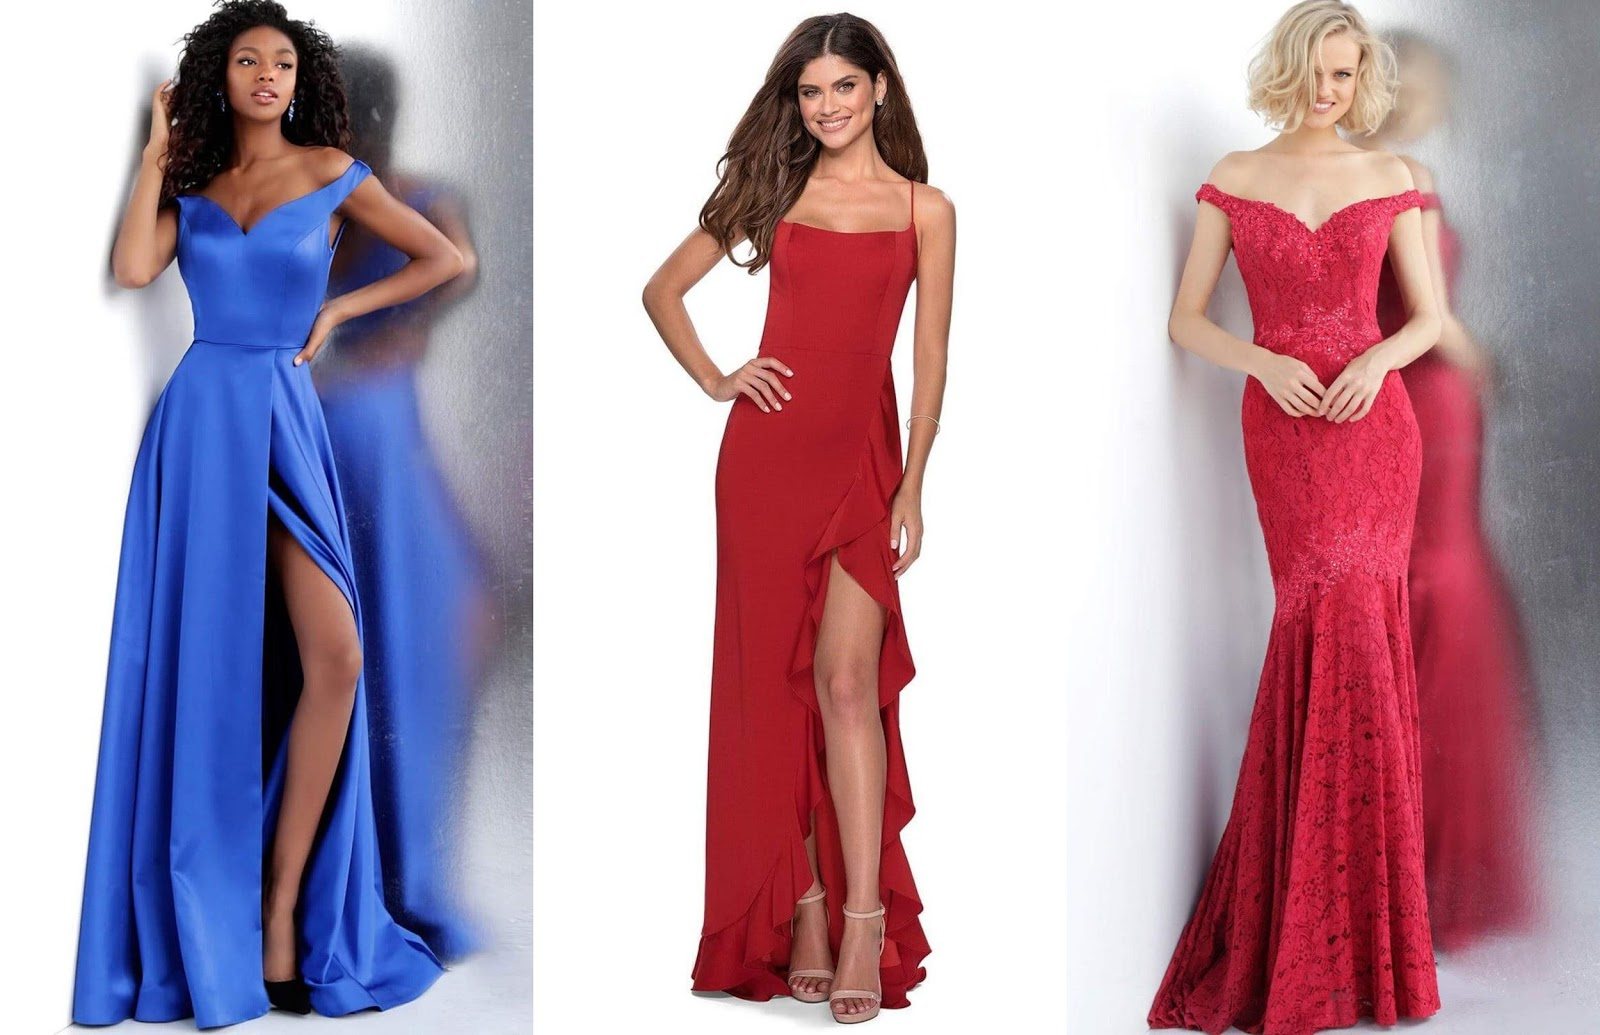 Common mistakes while picking up prom dresses on sale